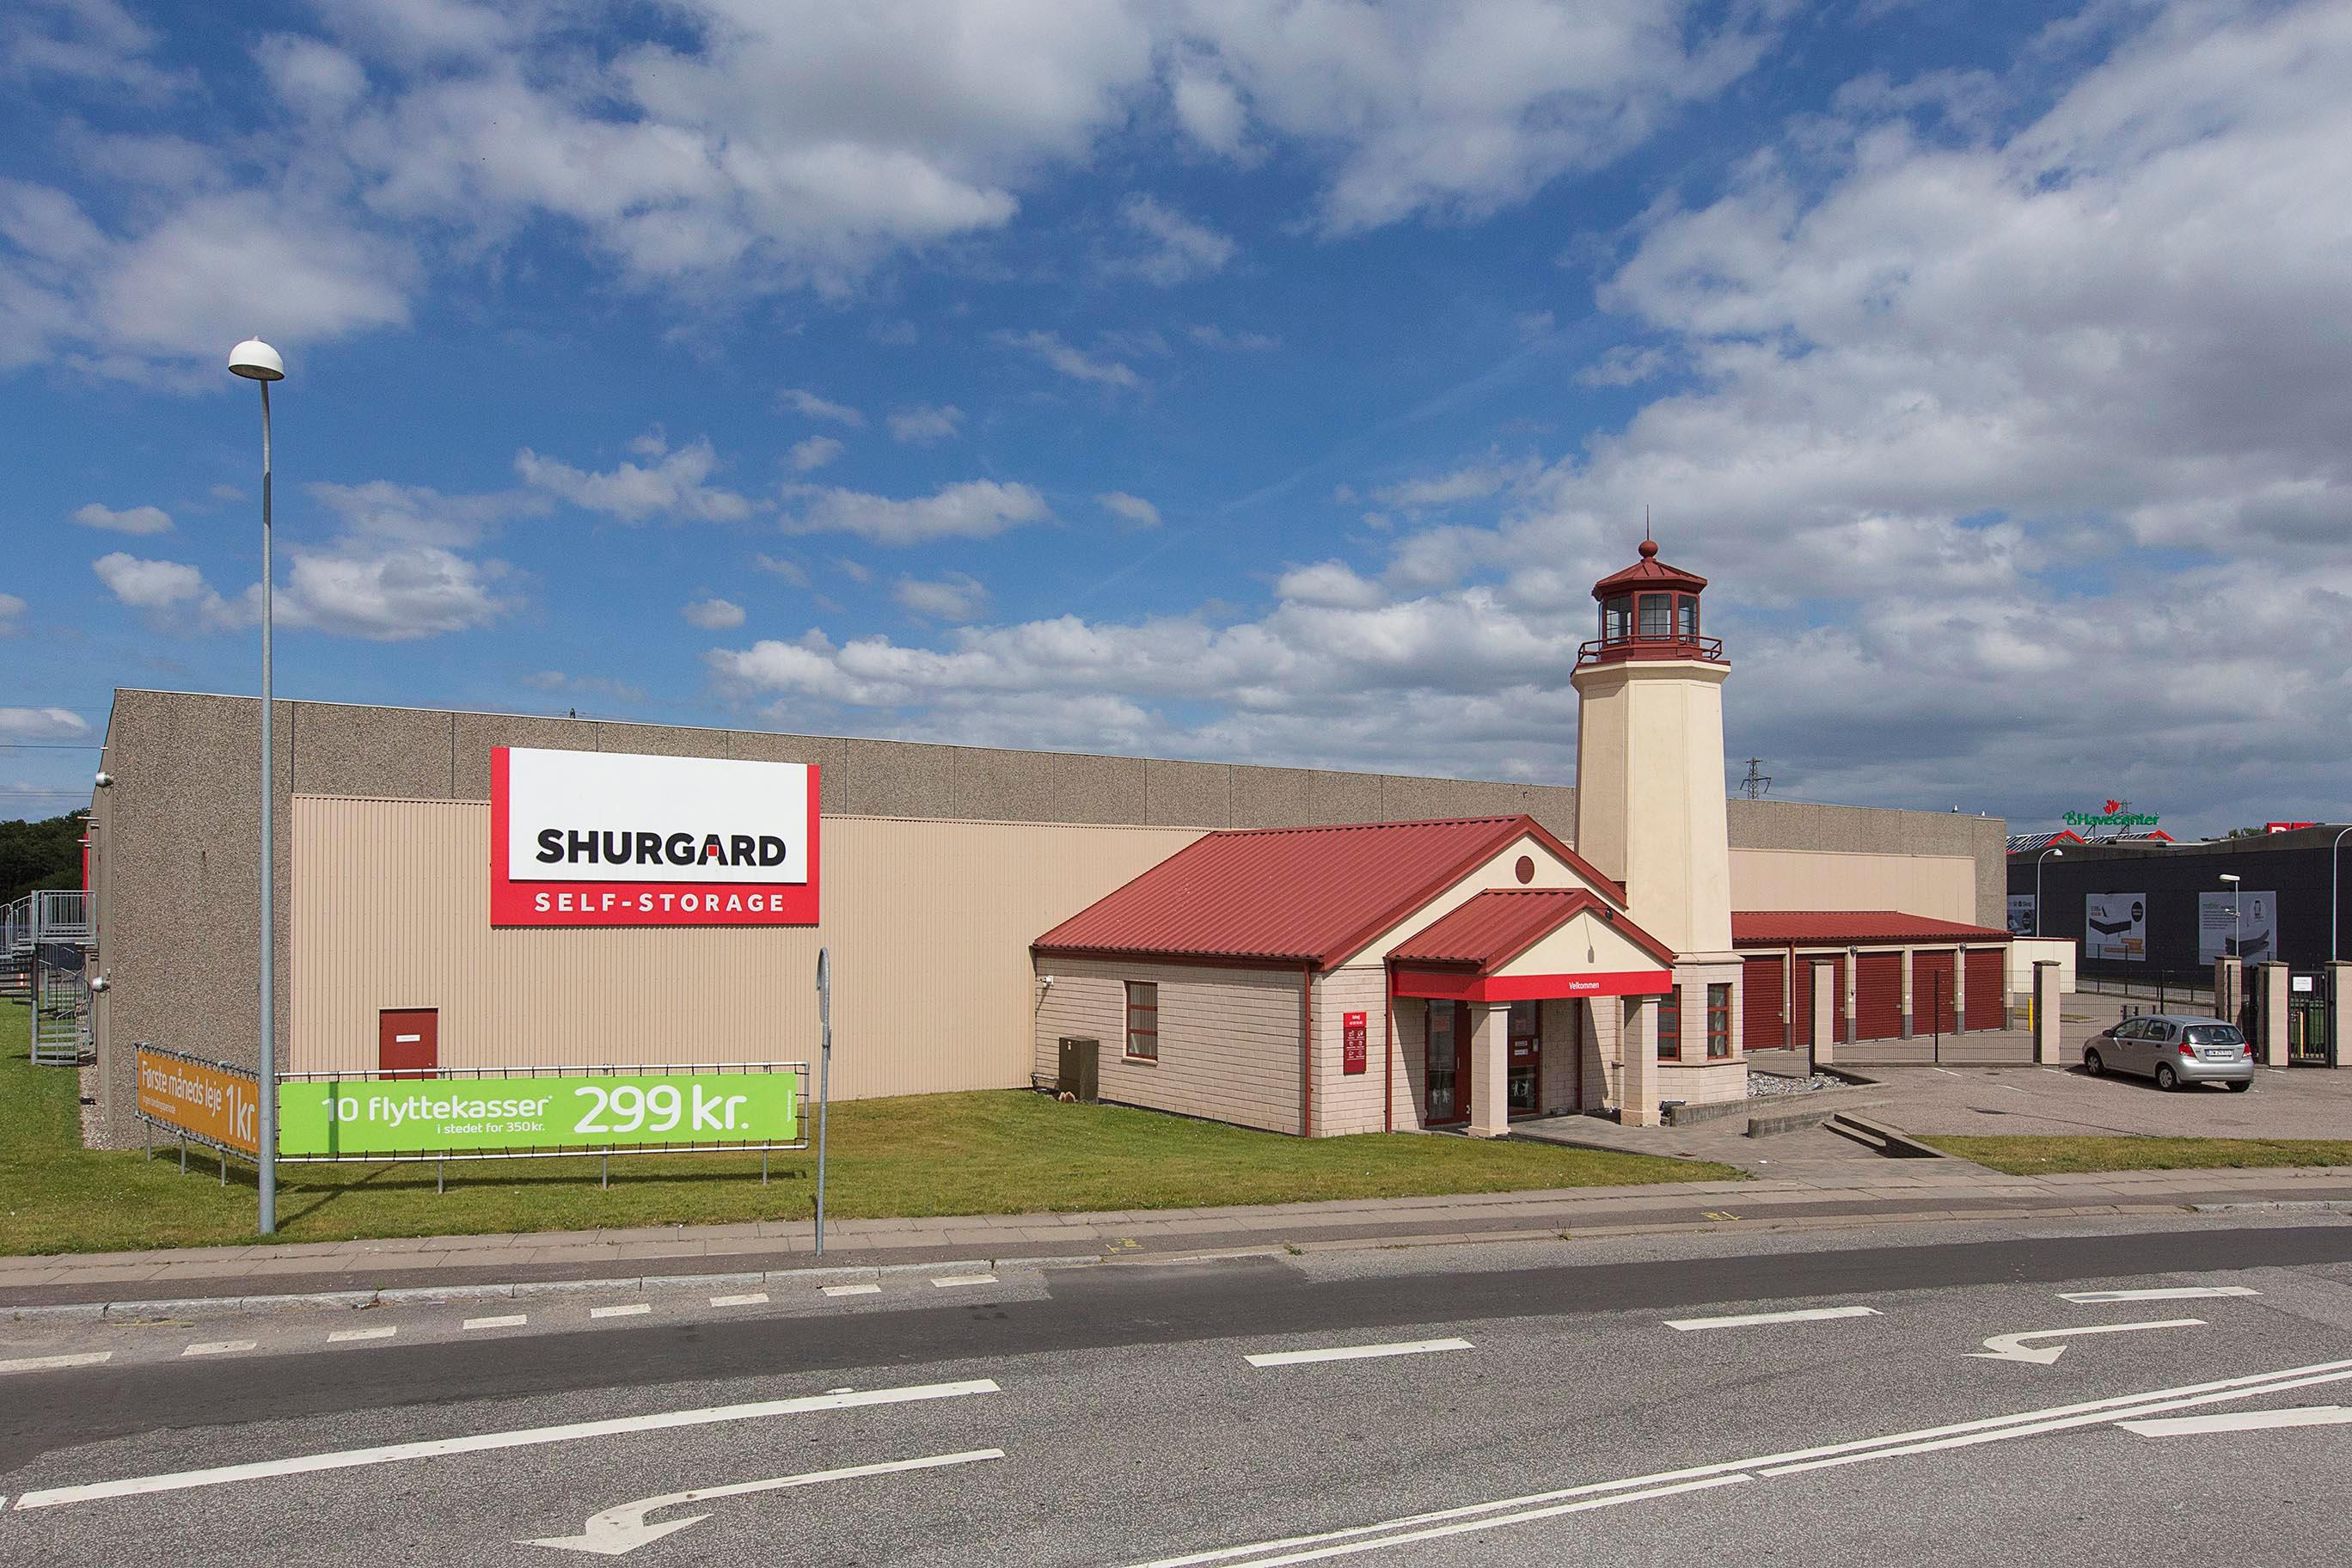 Shurgard Self Storage Ishøj